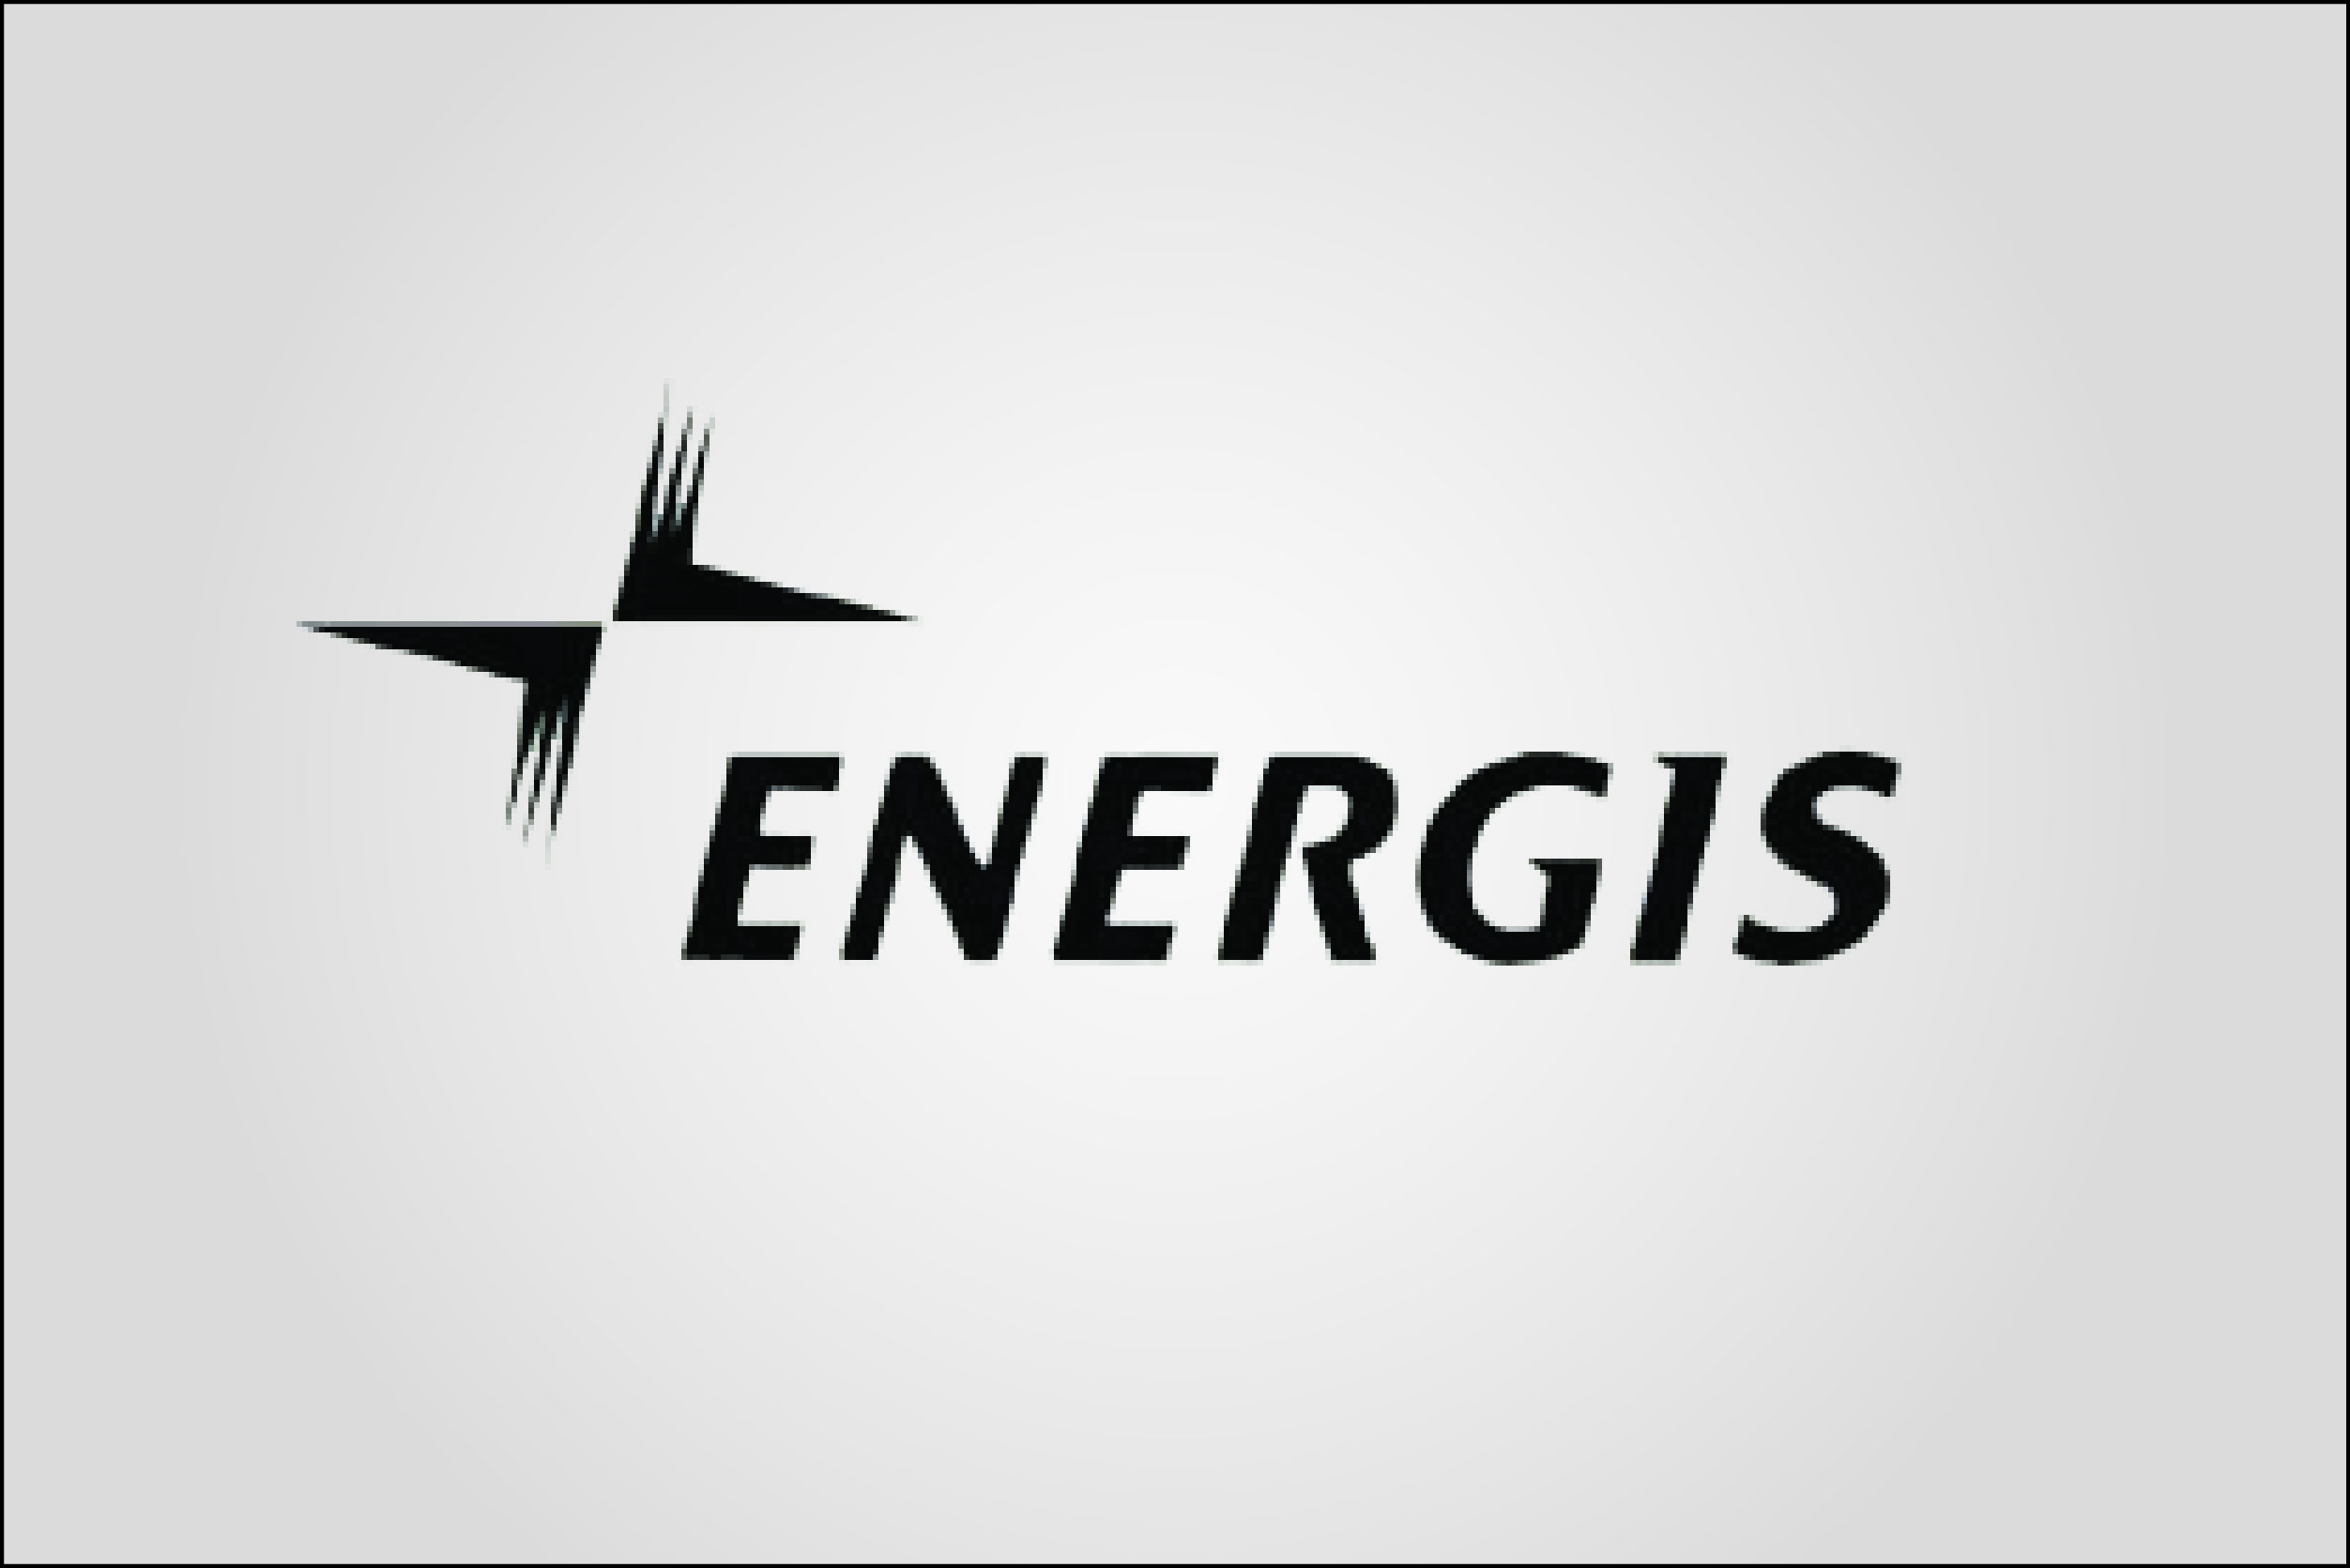 telecommunications operational review for energis